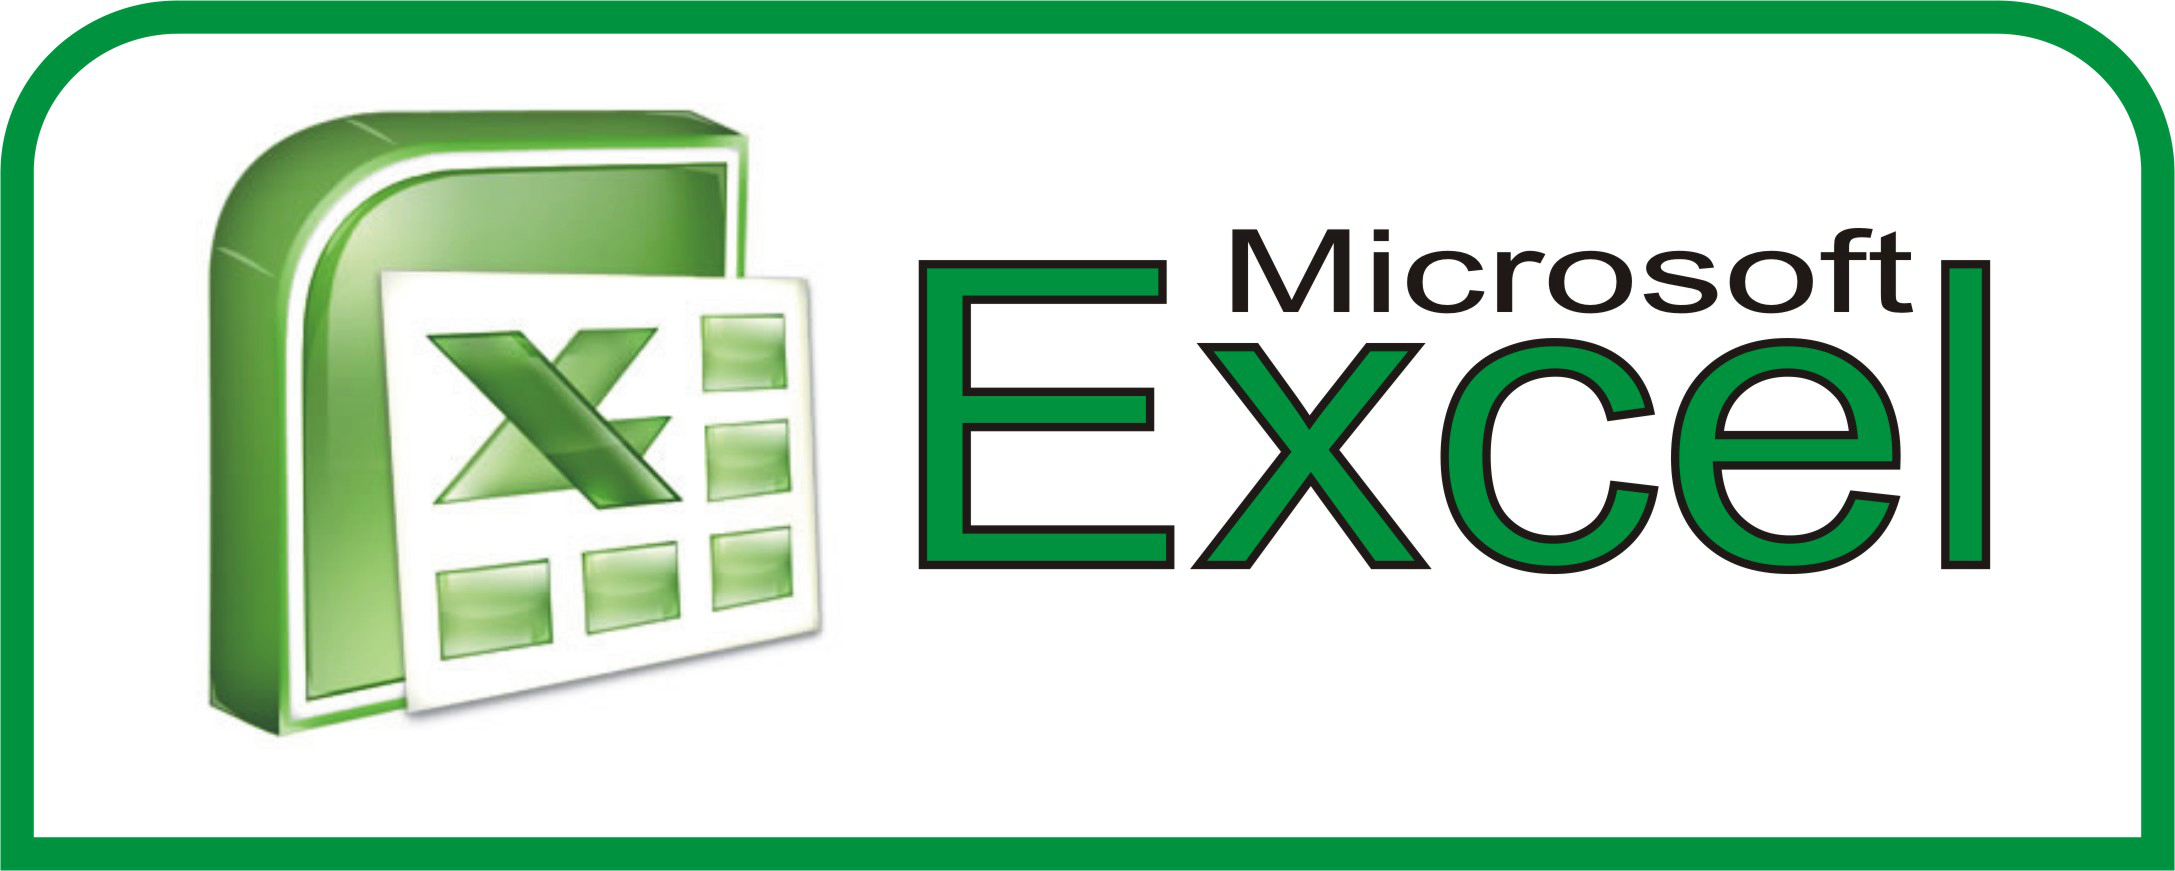 Ediblewildsus  Inspiring  Excel Shortcuts You Probably Didnt Know About  Techdissected With Interesting Excel Personal Finance Besides Calculate Yield To Maturity In Excel Furthermore Round To Nearest Hundred Excel With Amazing Unhiding Cells In Excel Also Excel Upgrade In Addition Spss Excel And Merge Multiple Excel Files Into One As Well As Excel Pie Chart Grouping Additionally Create Gantt Chart Excel From Techdissectedcom With Ediblewildsus  Interesting  Excel Shortcuts You Probably Didnt Know About  Techdissected With Amazing Excel Personal Finance Besides Calculate Yield To Maturity In Excel Furthermore Round To Nearest Hundred Excel And Inspiring Unhiding Cells In Excel Also Excel Upgrade In Addition Spss Excel From Techdissectedcom